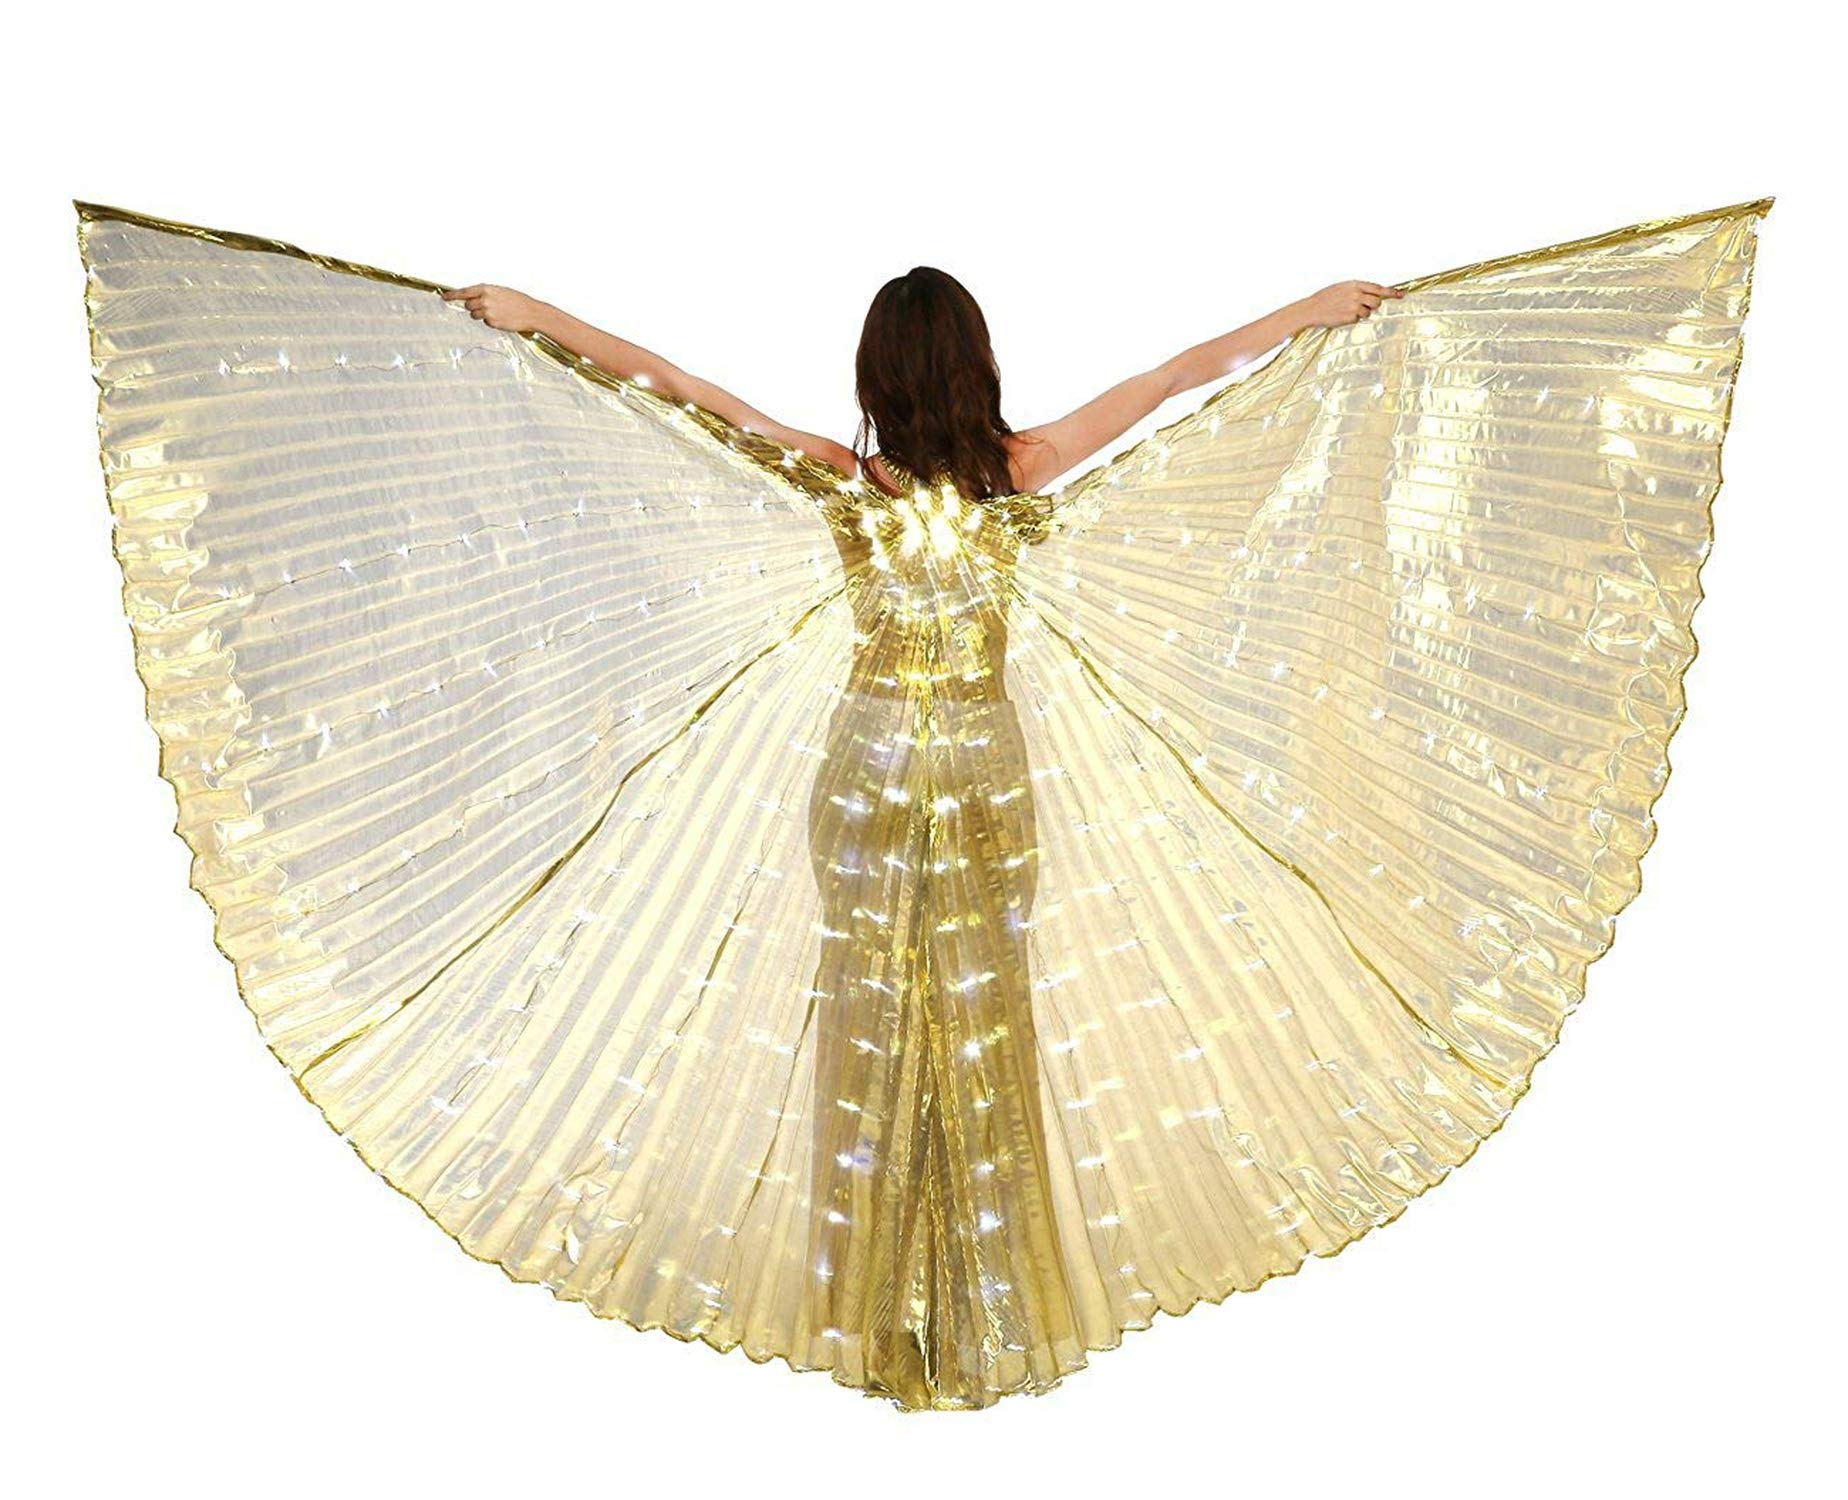 xiaoxiaoland εїз Belly Dance Wing with Rods-360 Degree Angel Wings with Portable Telescopic Sticks for Adults and Child,Gold by xiaoxiaoland